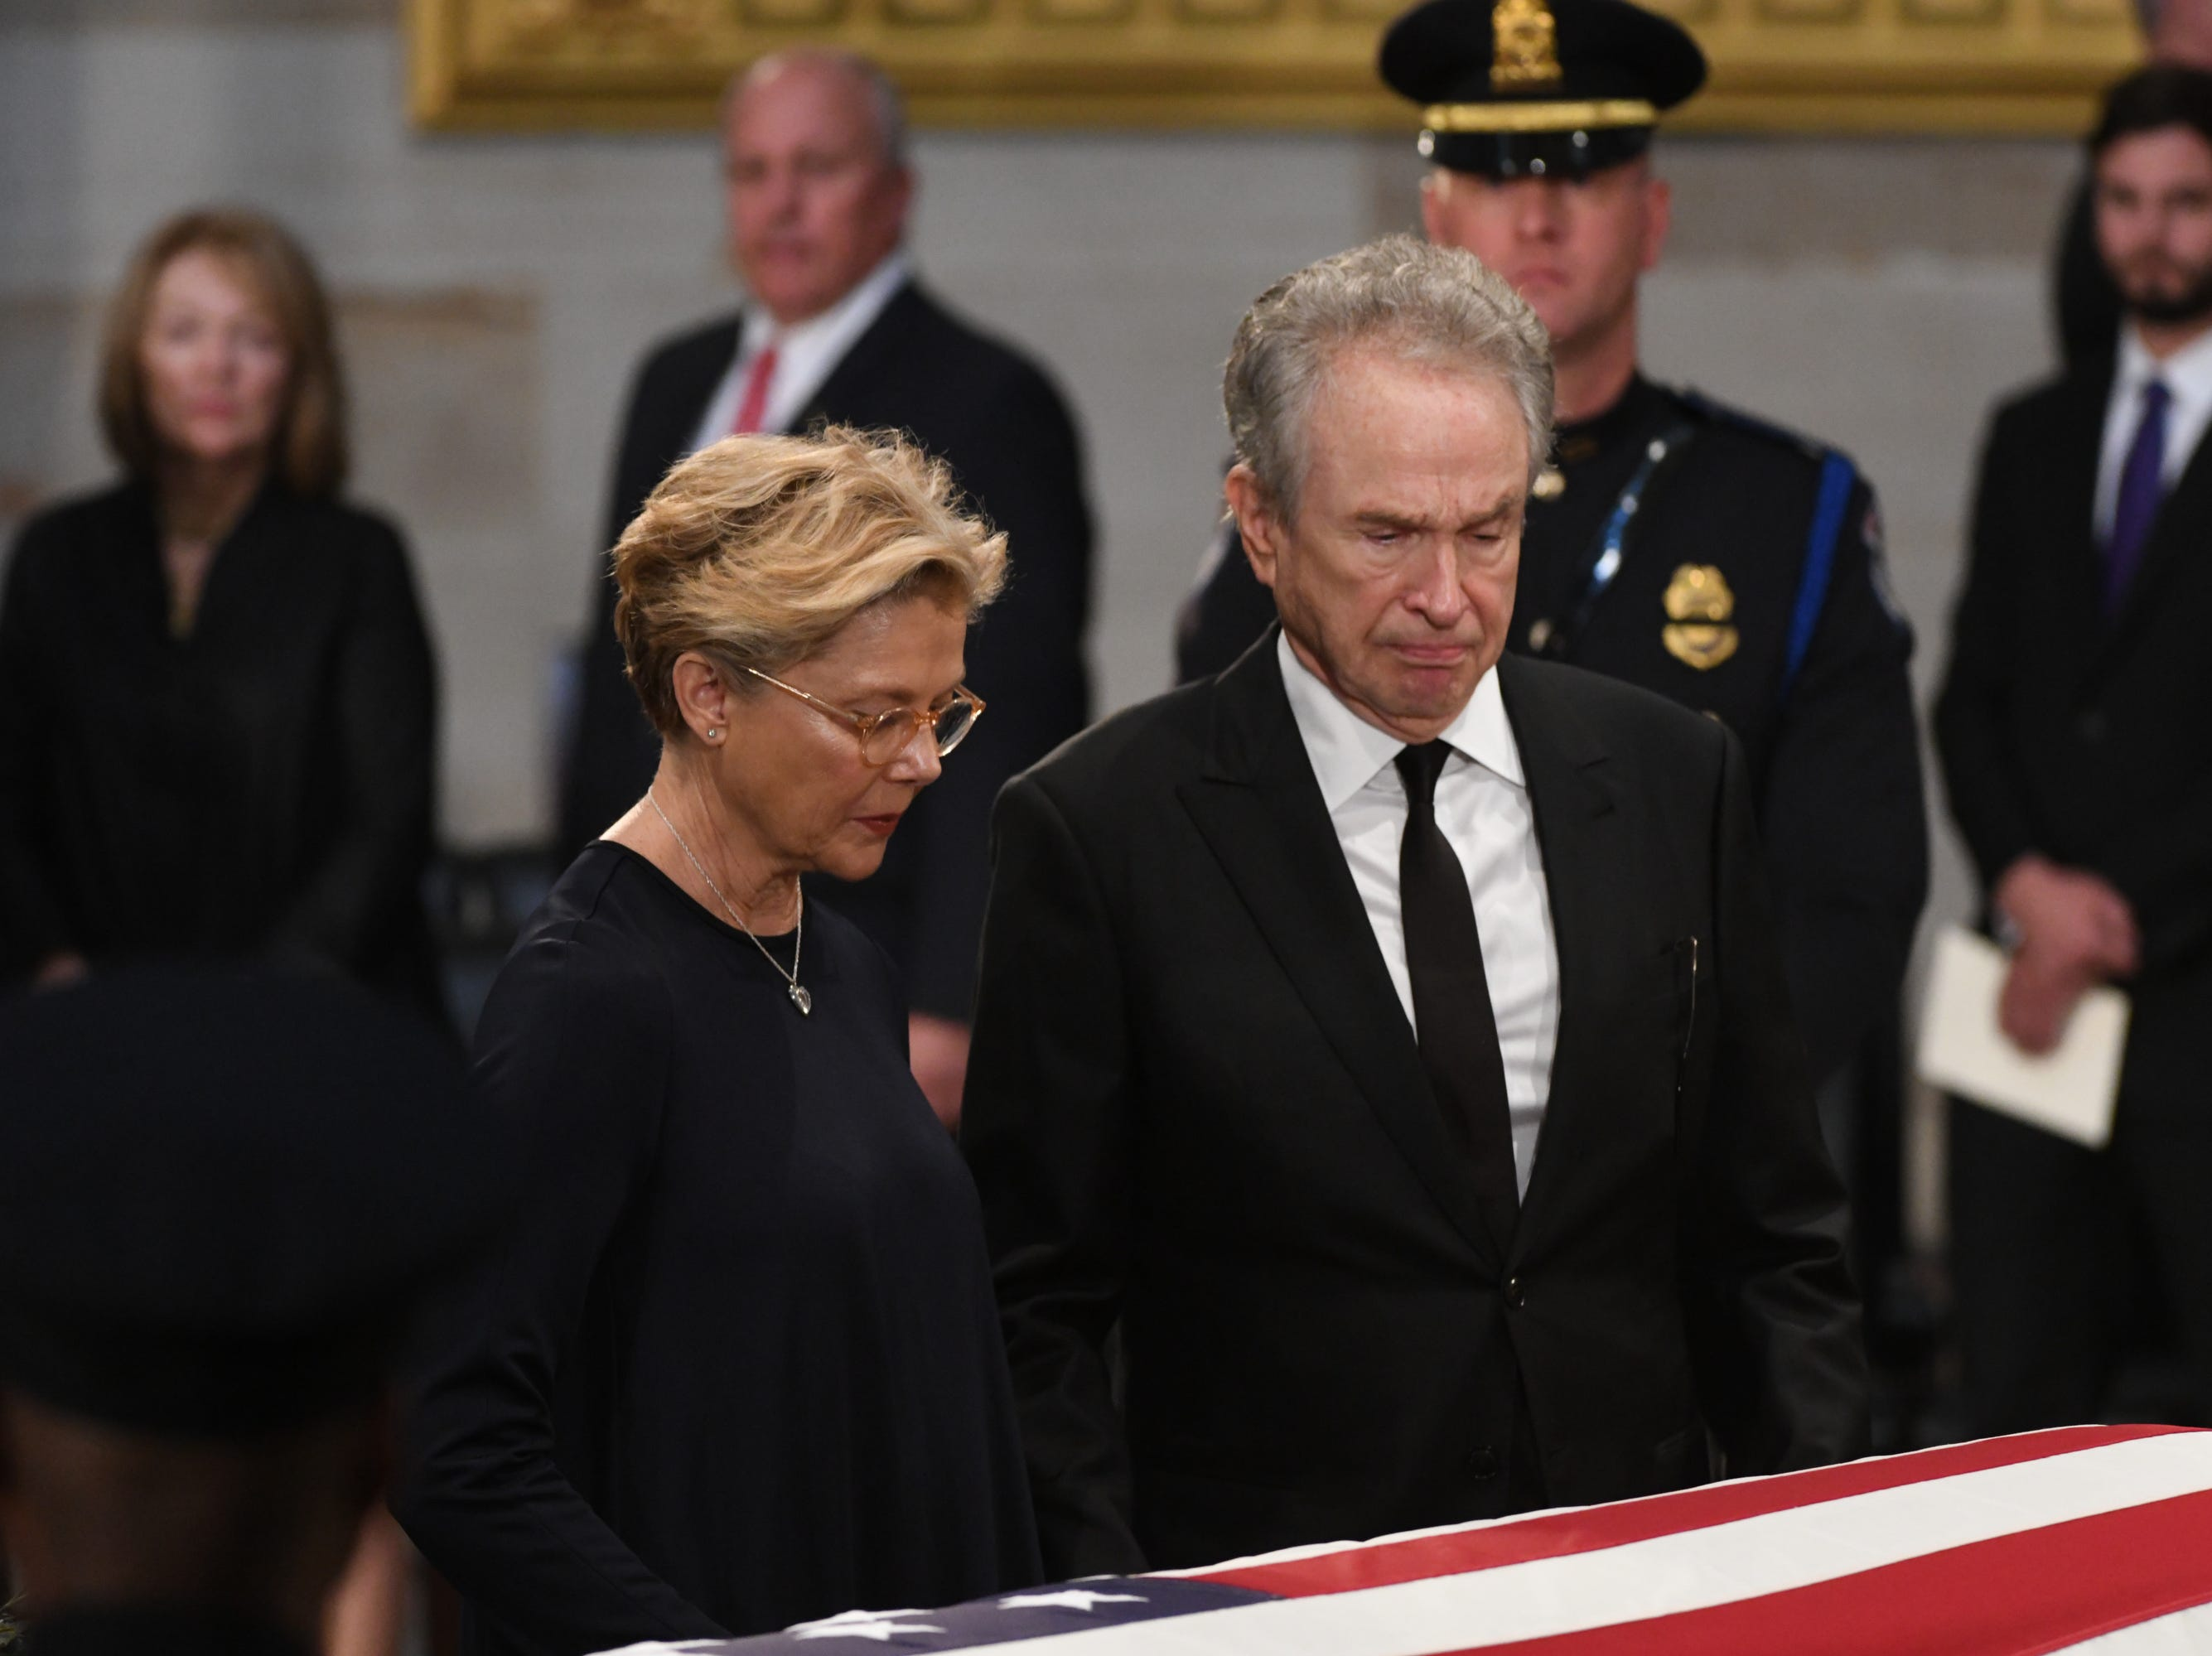 8/31/18 11:33:18 AM -- Washington, DC, U.S.A  -- The body of John McCain lies in state at the U.S. Capitol in Washington on Aug. 31, 2018 in Washington. Sen. McCain died on Aug. 25. --    Photo by Jasper Colt, USA TODAY Staff